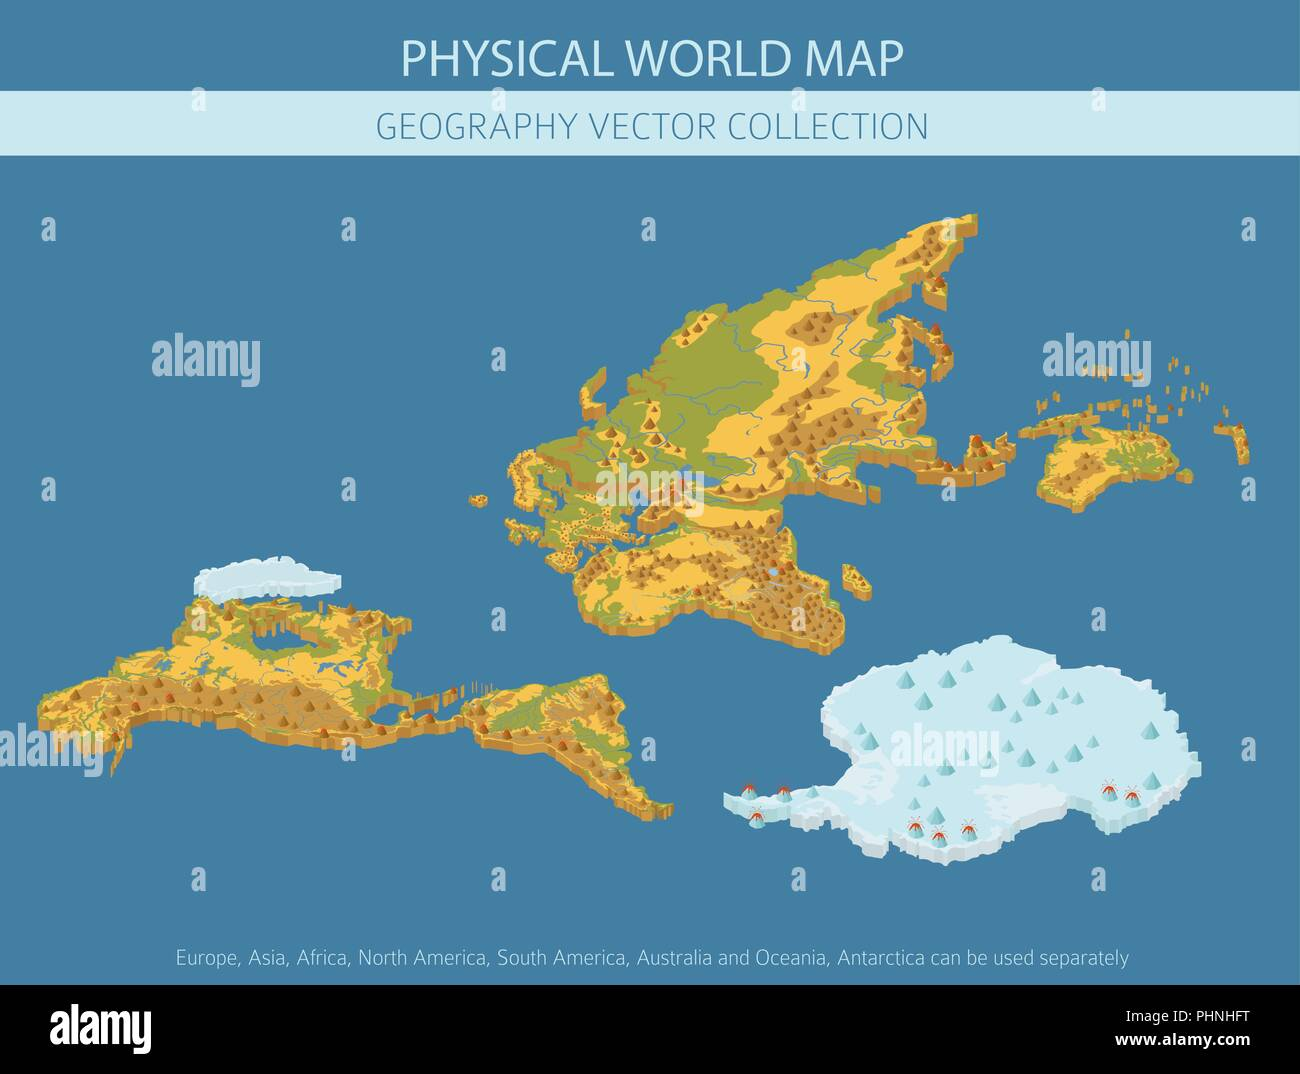 Isometric 3d world map elements. Build your own geography info graphic collection. Vector illustration - Stock Image